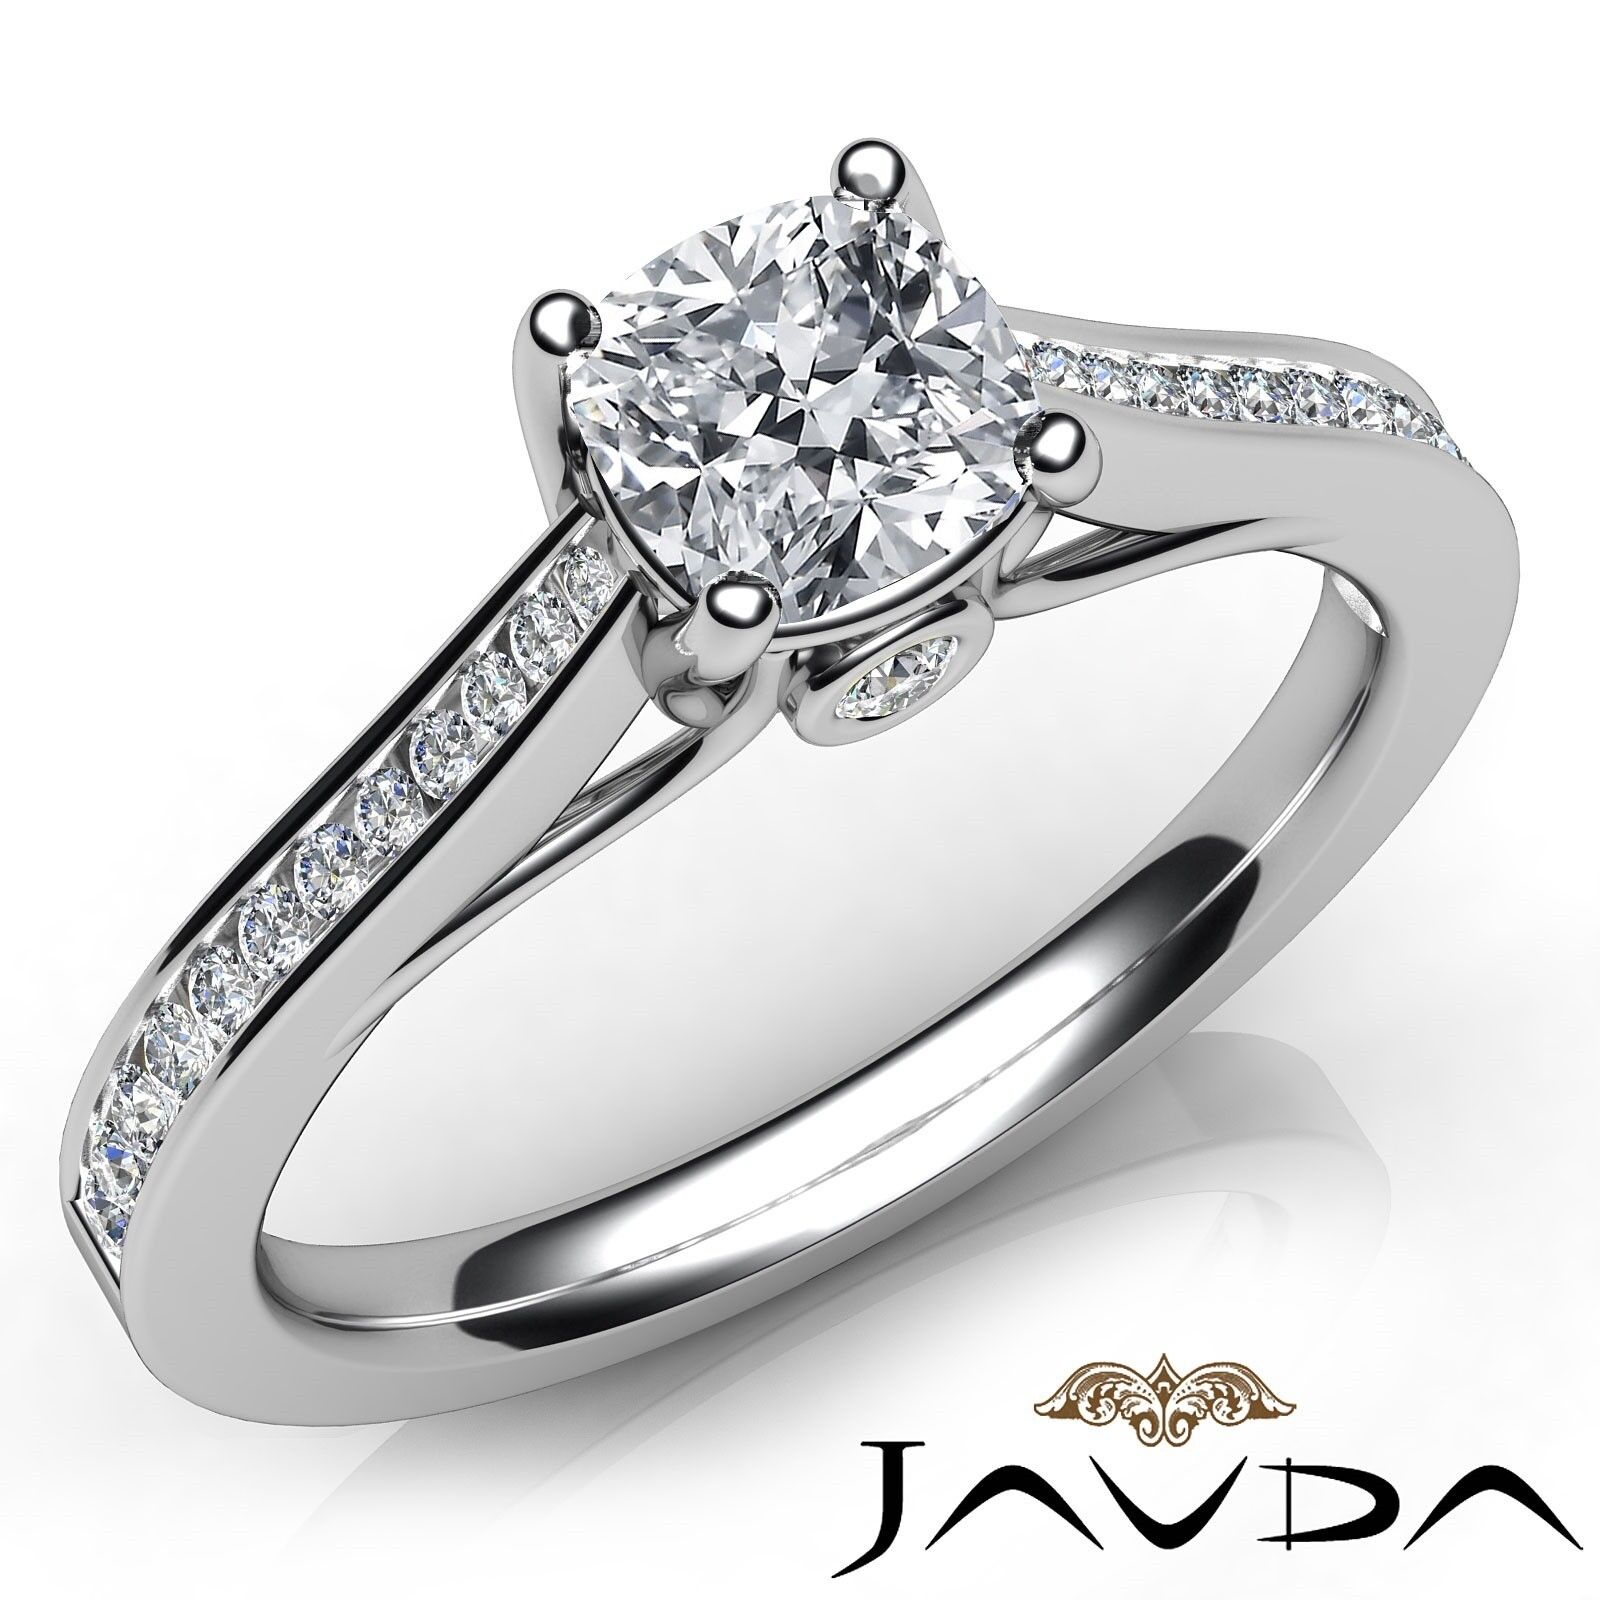 0.81ctw Channel Bezel Prong Cushion Diamond Engagement Ring GIA I-SI1 White Gold